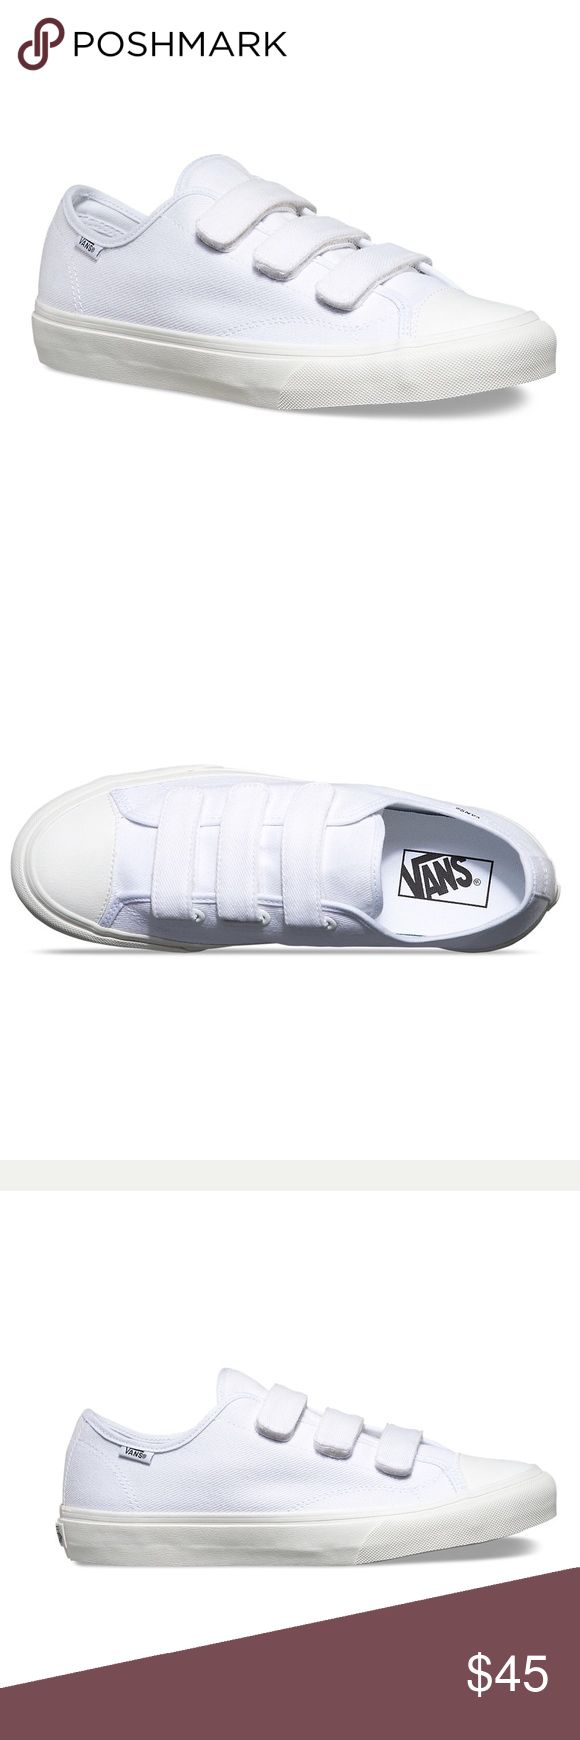 Vans Prison Issue Vans Prison Issue. Velcro straps. White canvas with white leather cap toe.  Unisex. Men's size 5.5 Women's size 7. Brand new with box Vans Shoes Sneakers